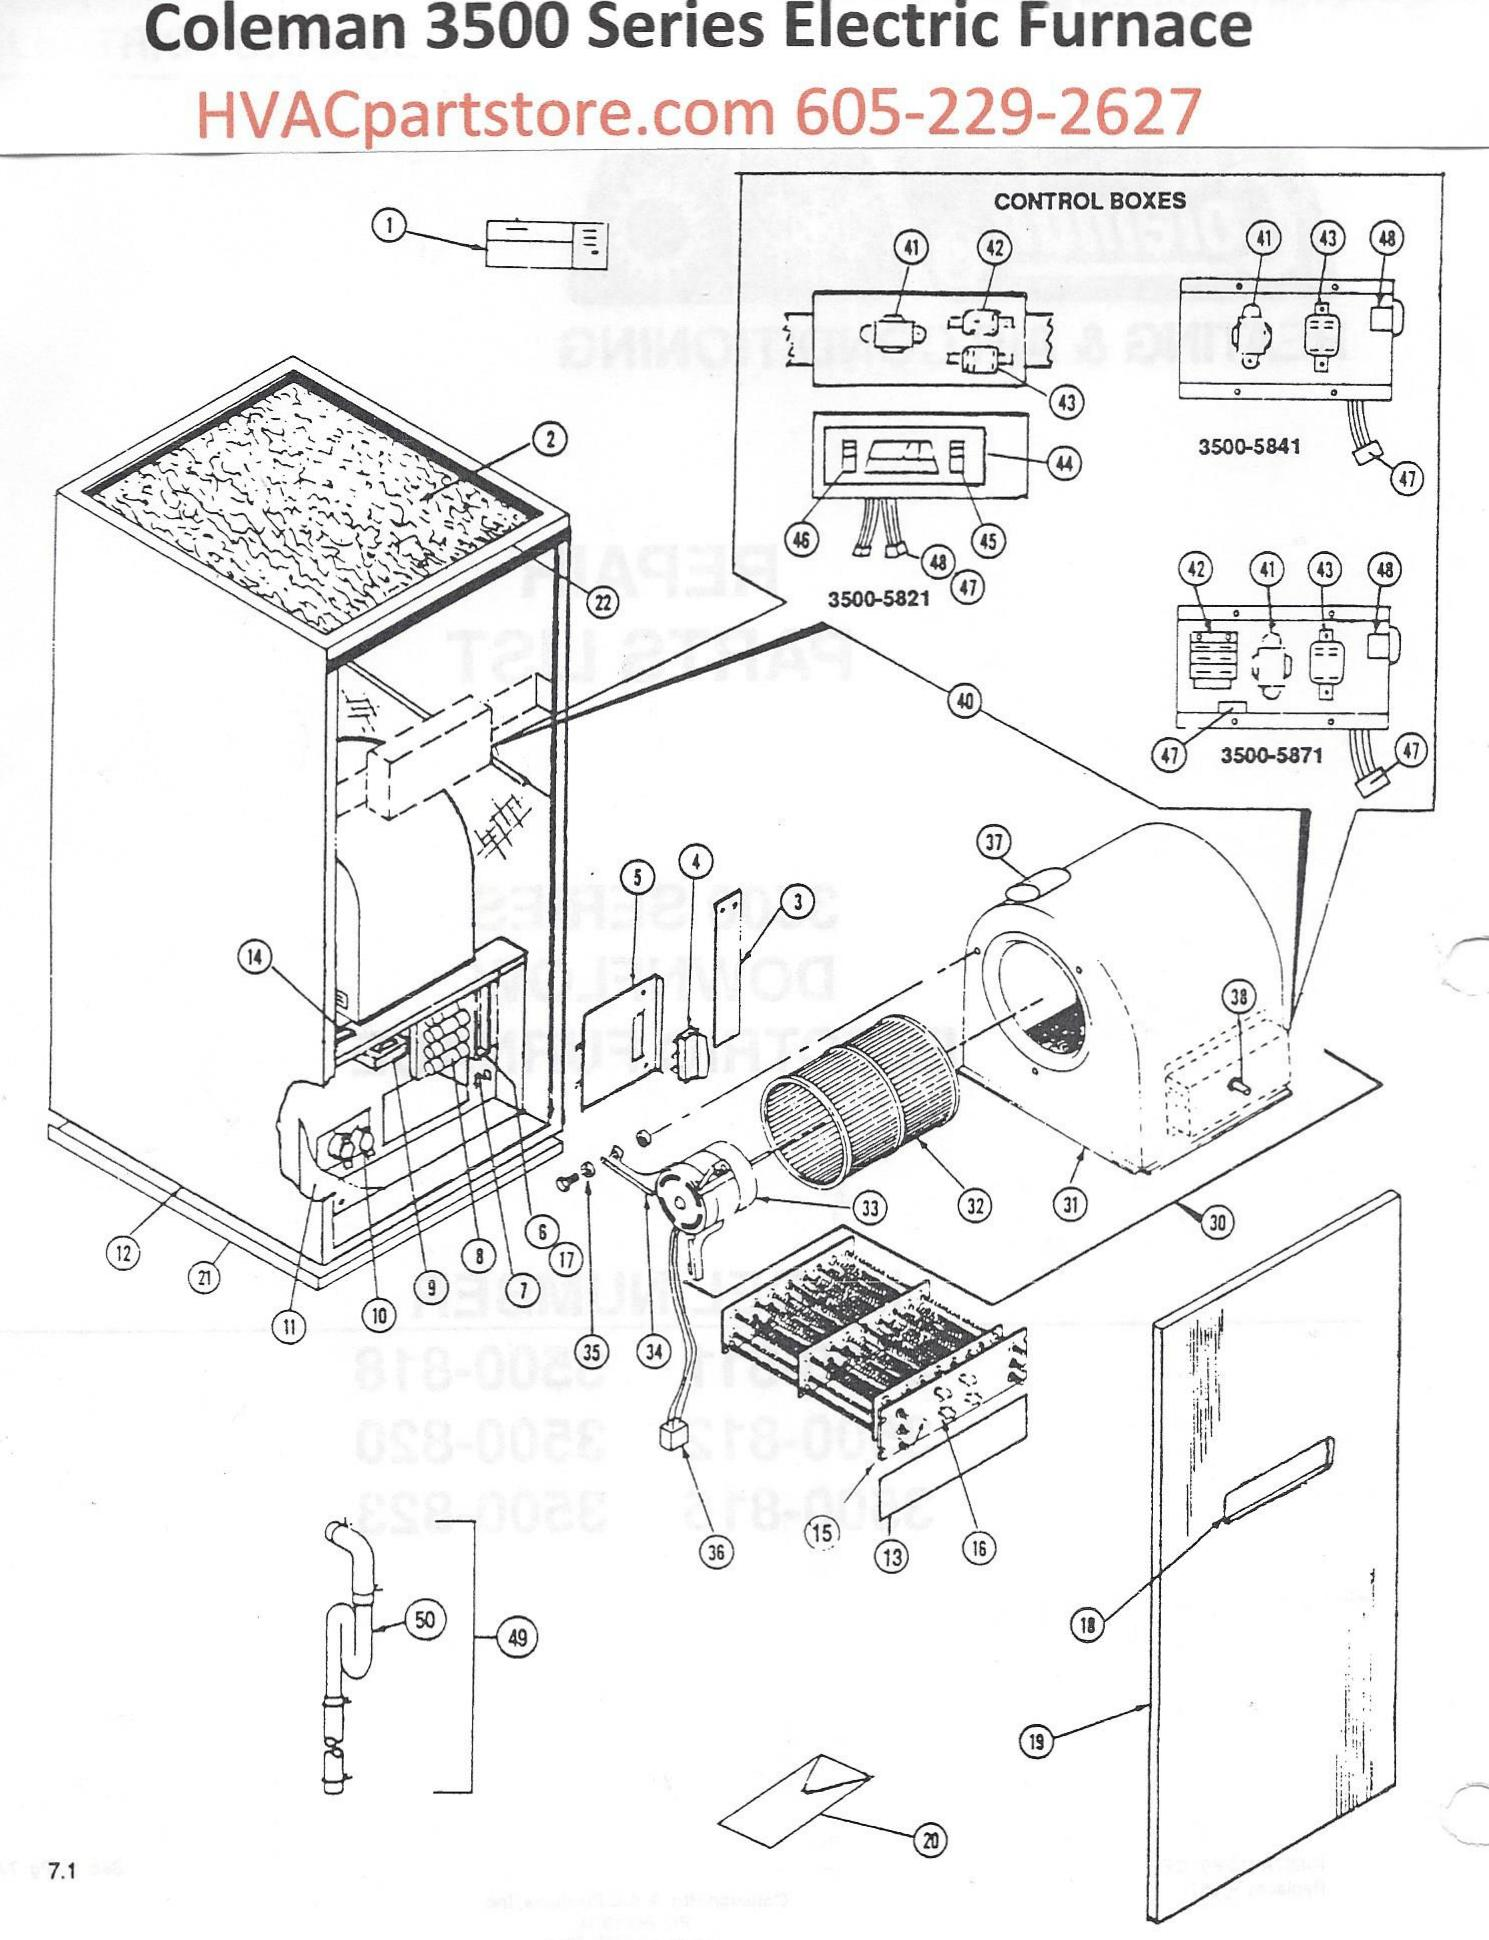 3500 8SeriesDiagram_c9d574c8 be0b 42e2 81c9 da4770439445?9698362429788324547 3500 818 coleman electric furnace parts hvacpartstore coleman furnace parts diagrams at reclaimingppi.co